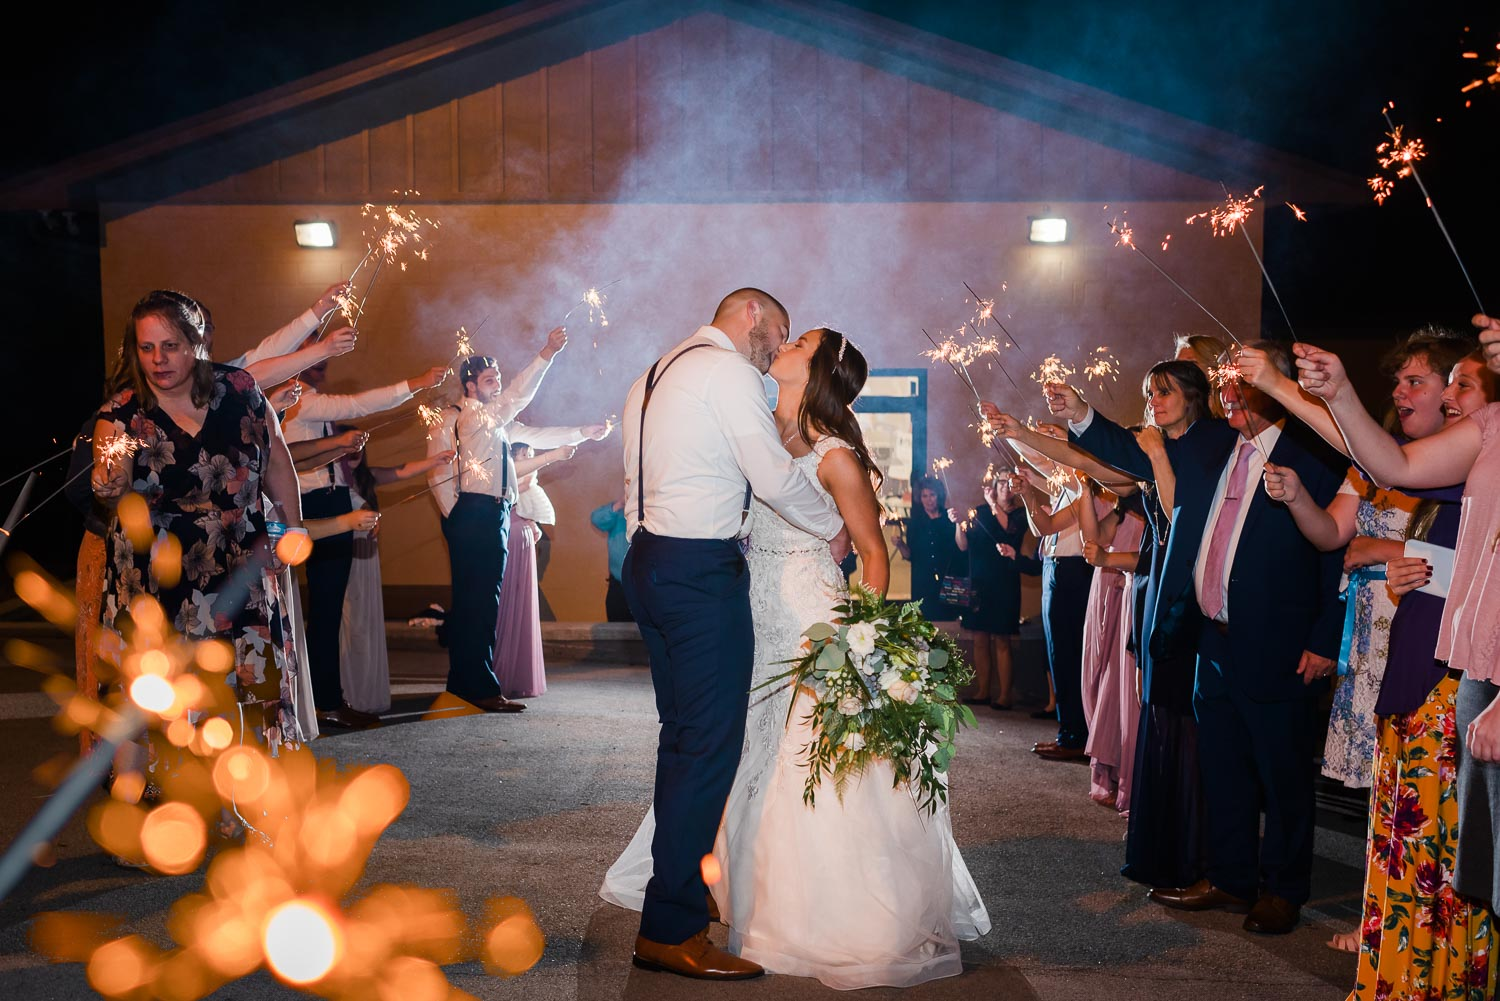 bride and groom stopping for a kiss during their sparkler exit from their wedding.